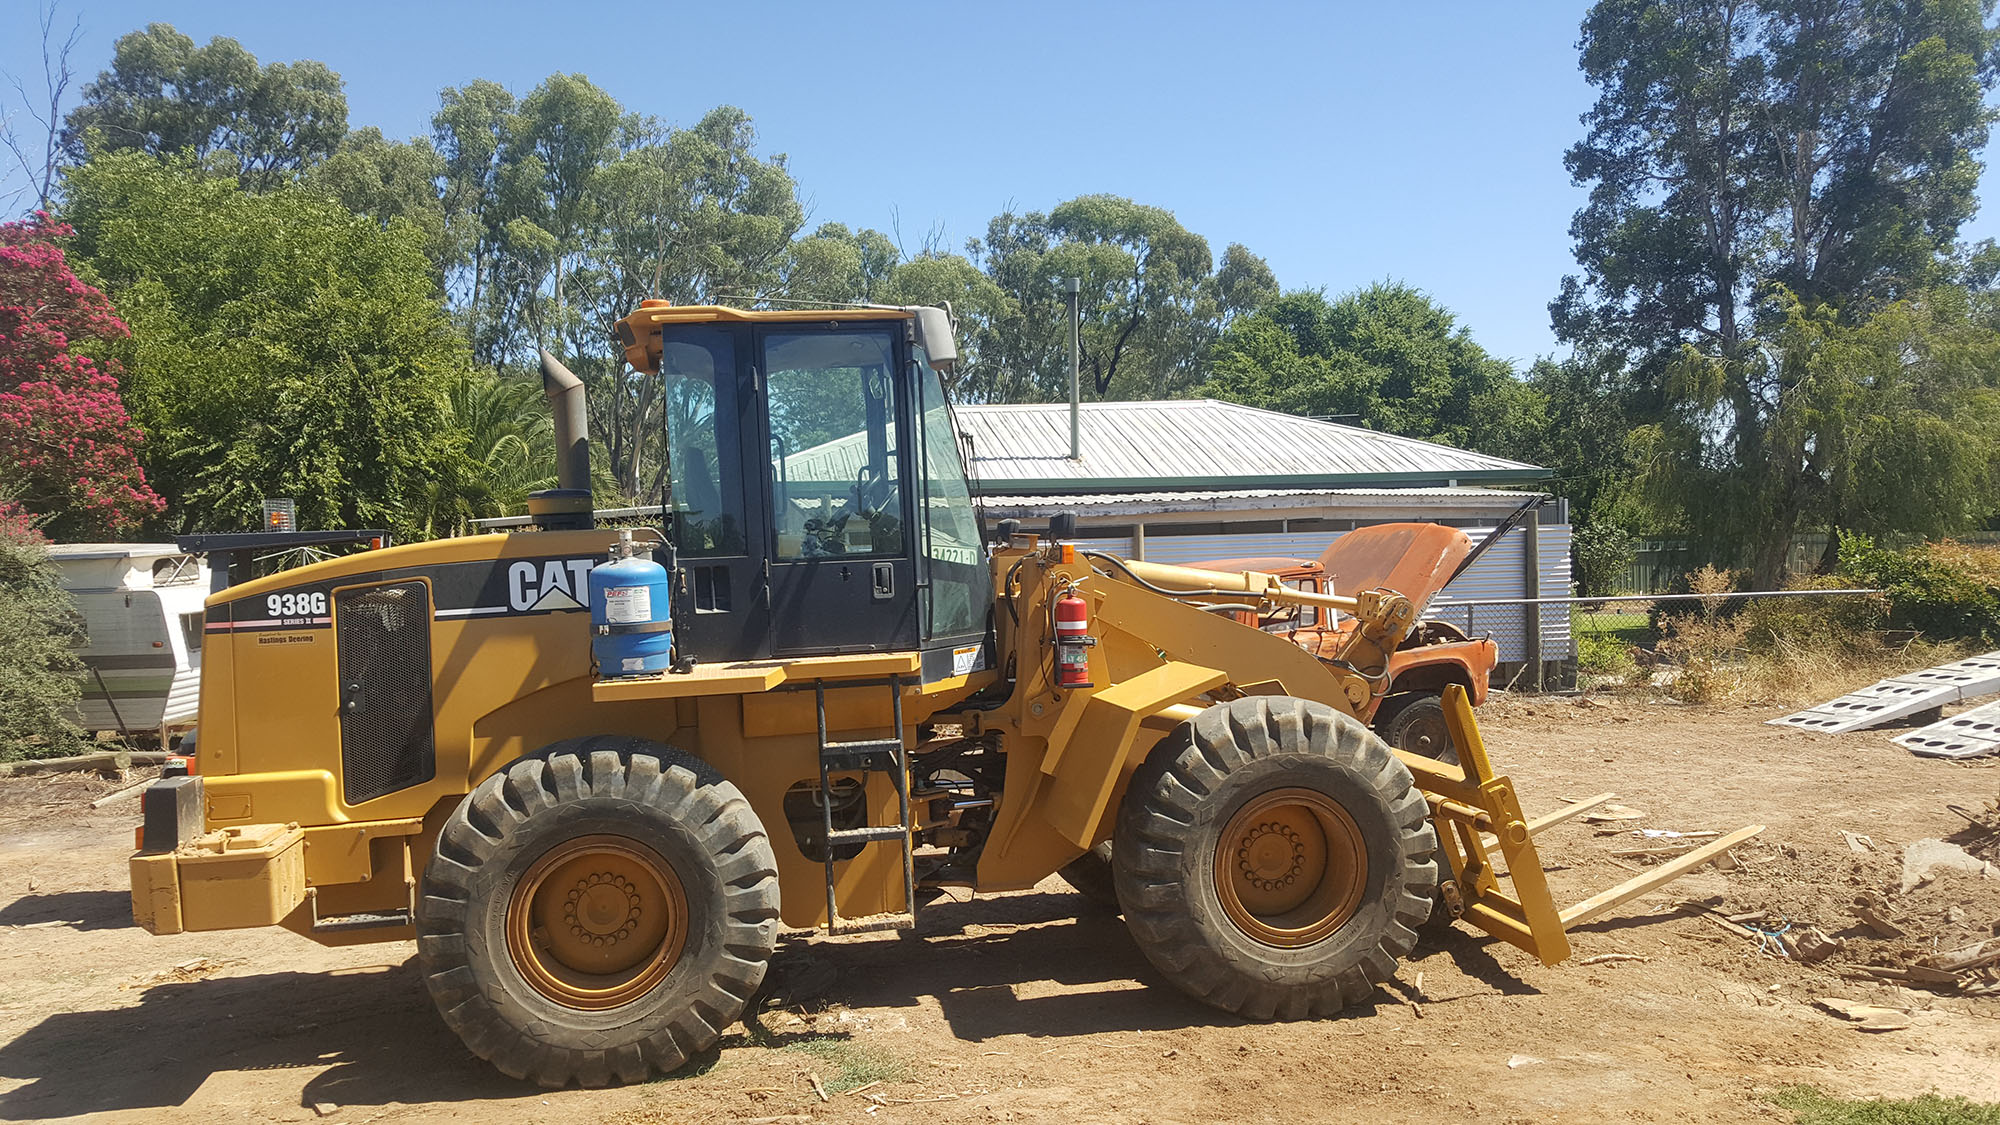 CID Services CAT Loader